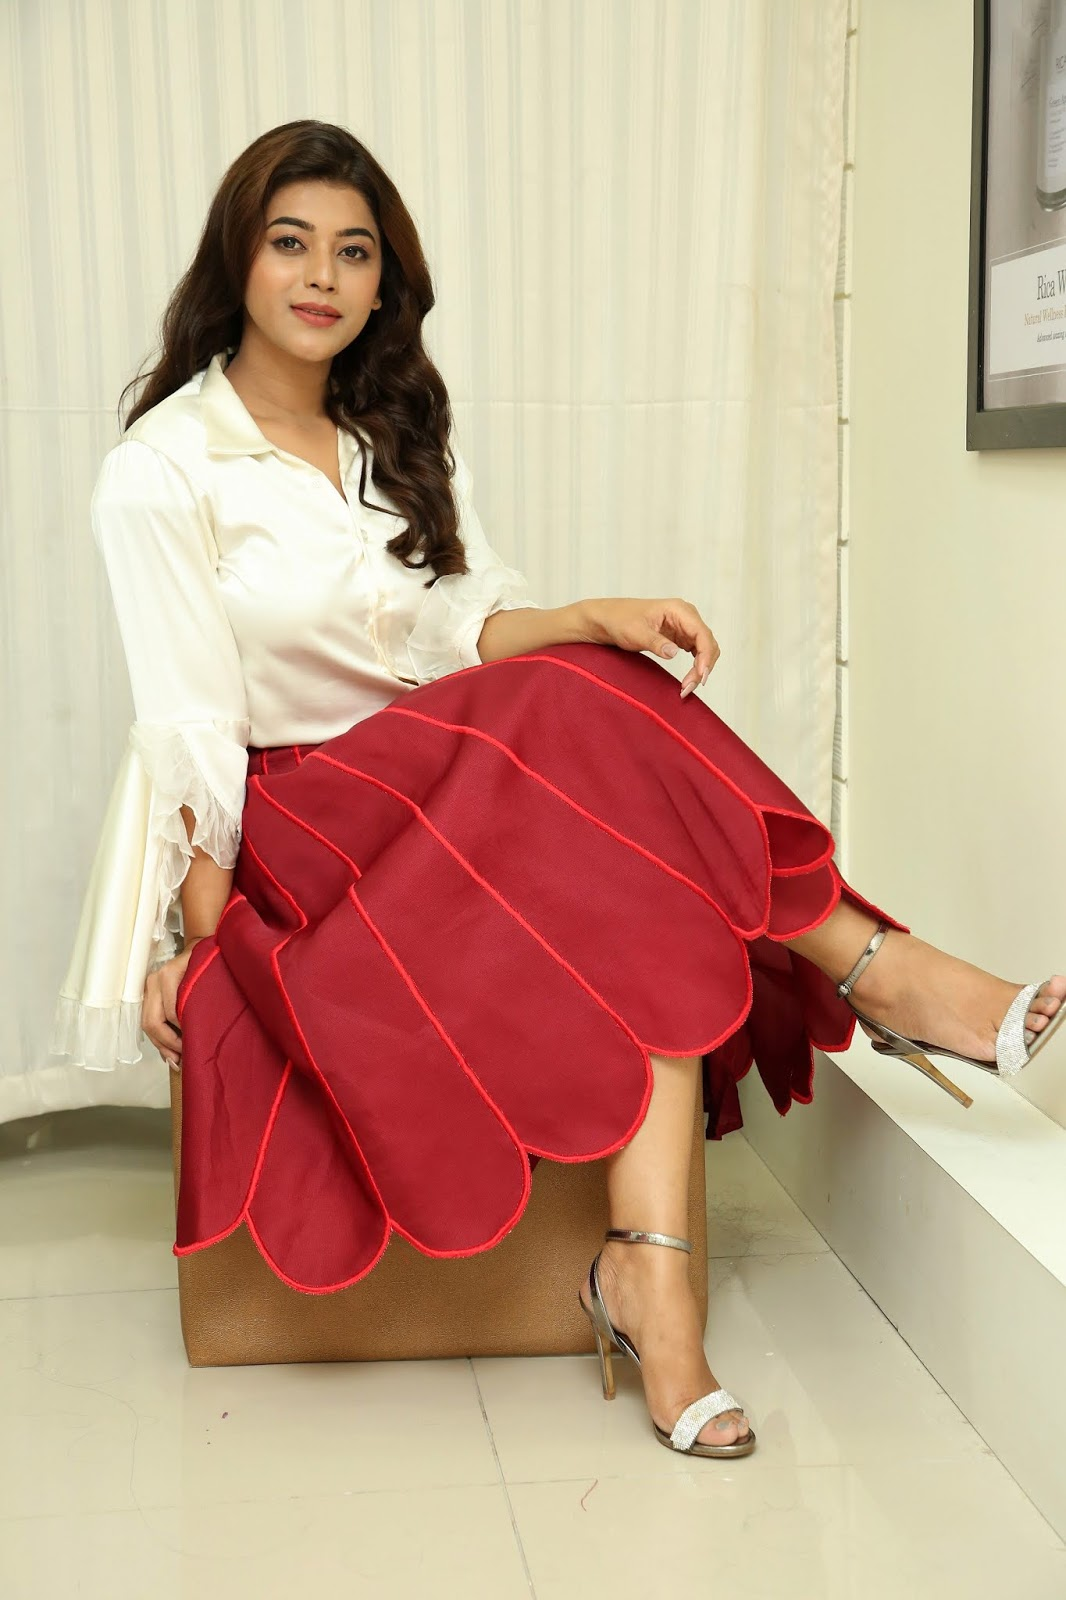 Yamini Bhaskar's Feet In Red Skirt